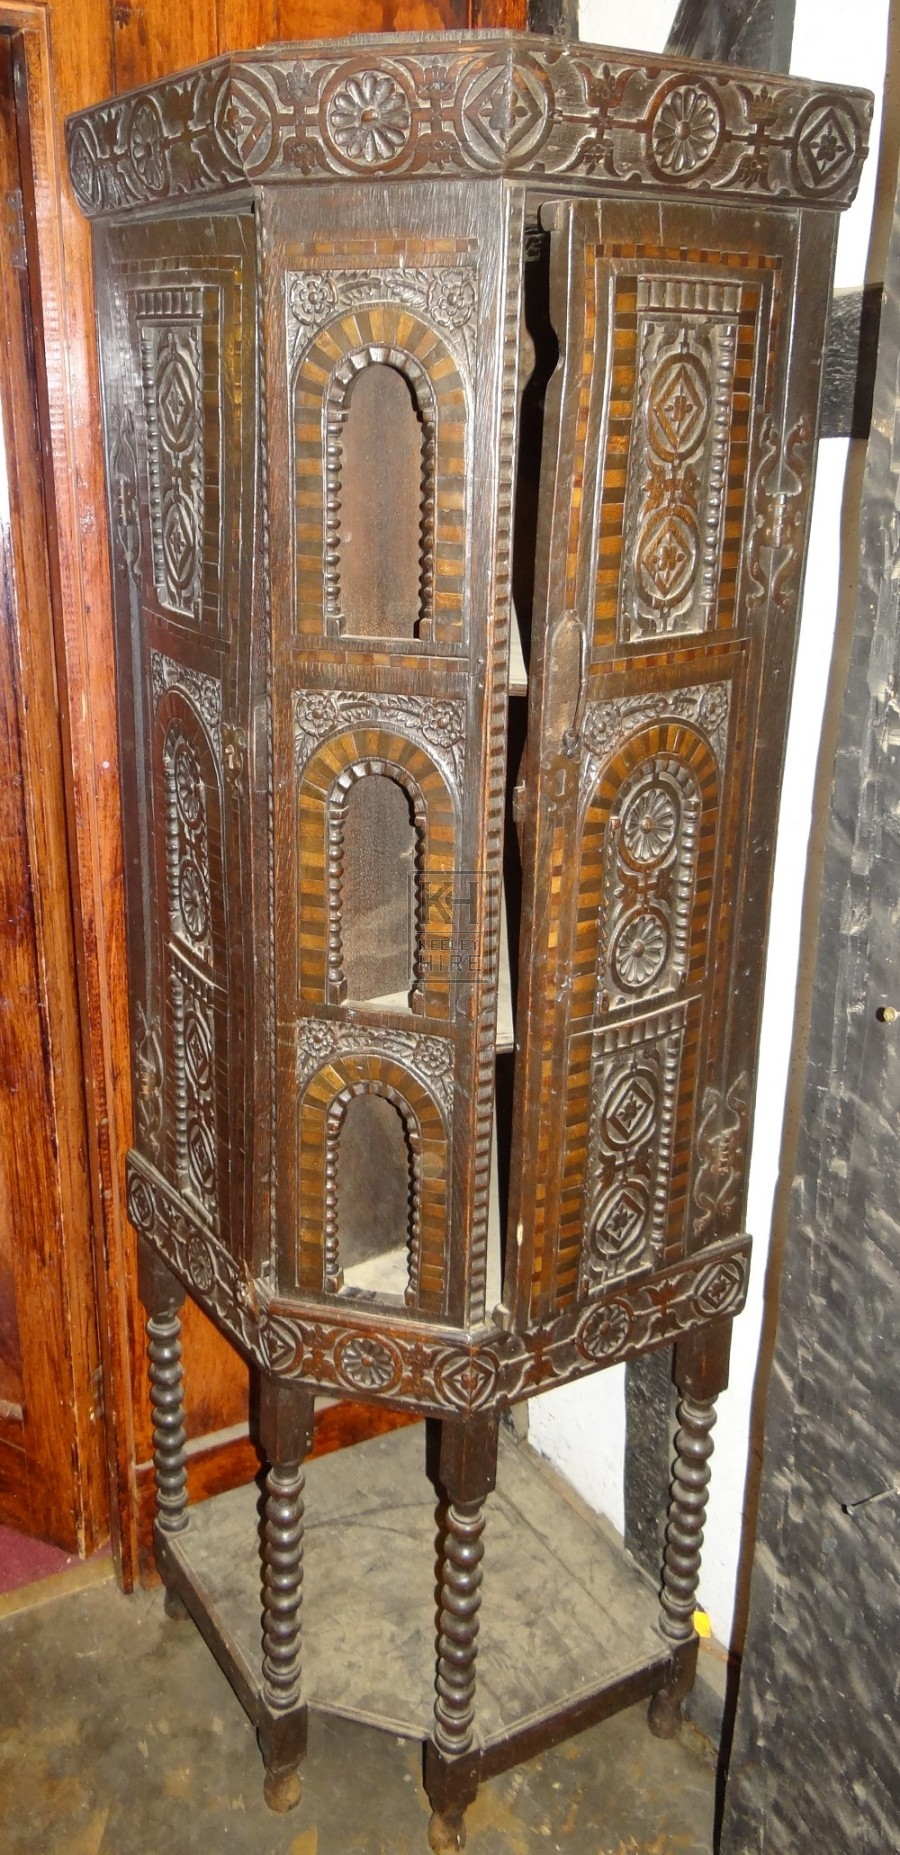 Freestanding carved wood cupboard